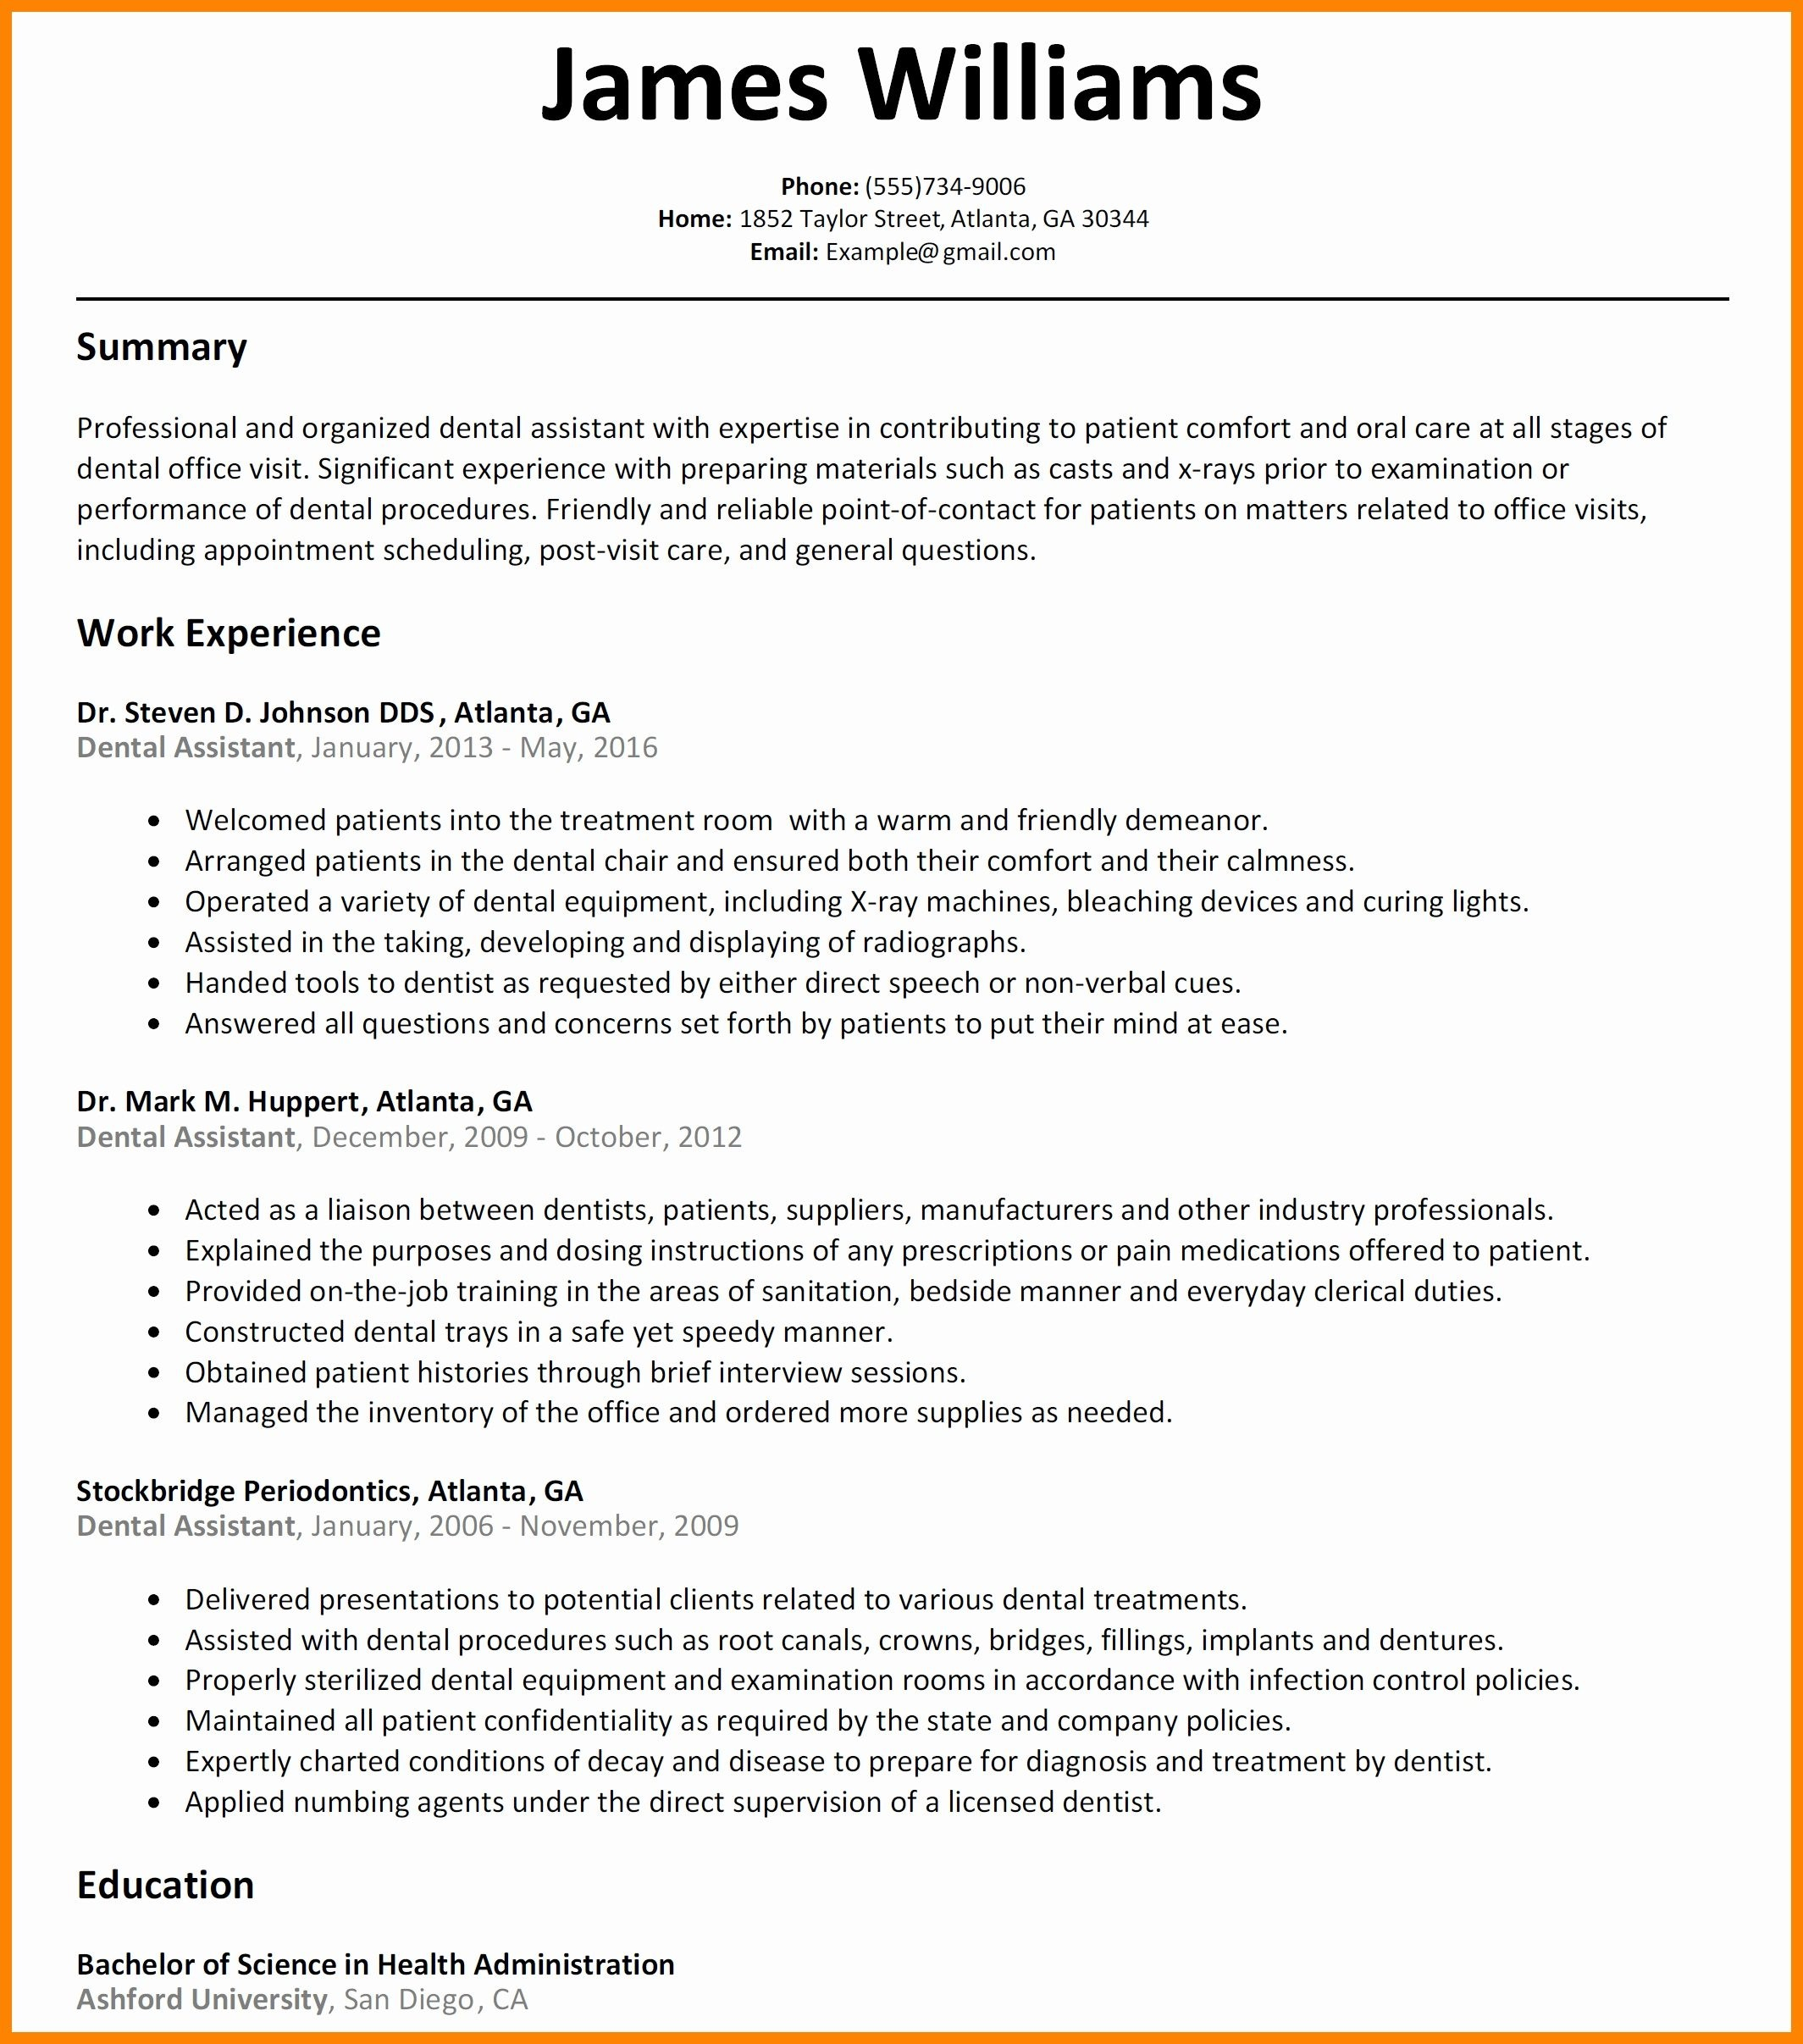 dental assistant resume template microsoft word example-Dental assistant resume templates lovely resume dental assistant for free dental assistant resume sample 5-f